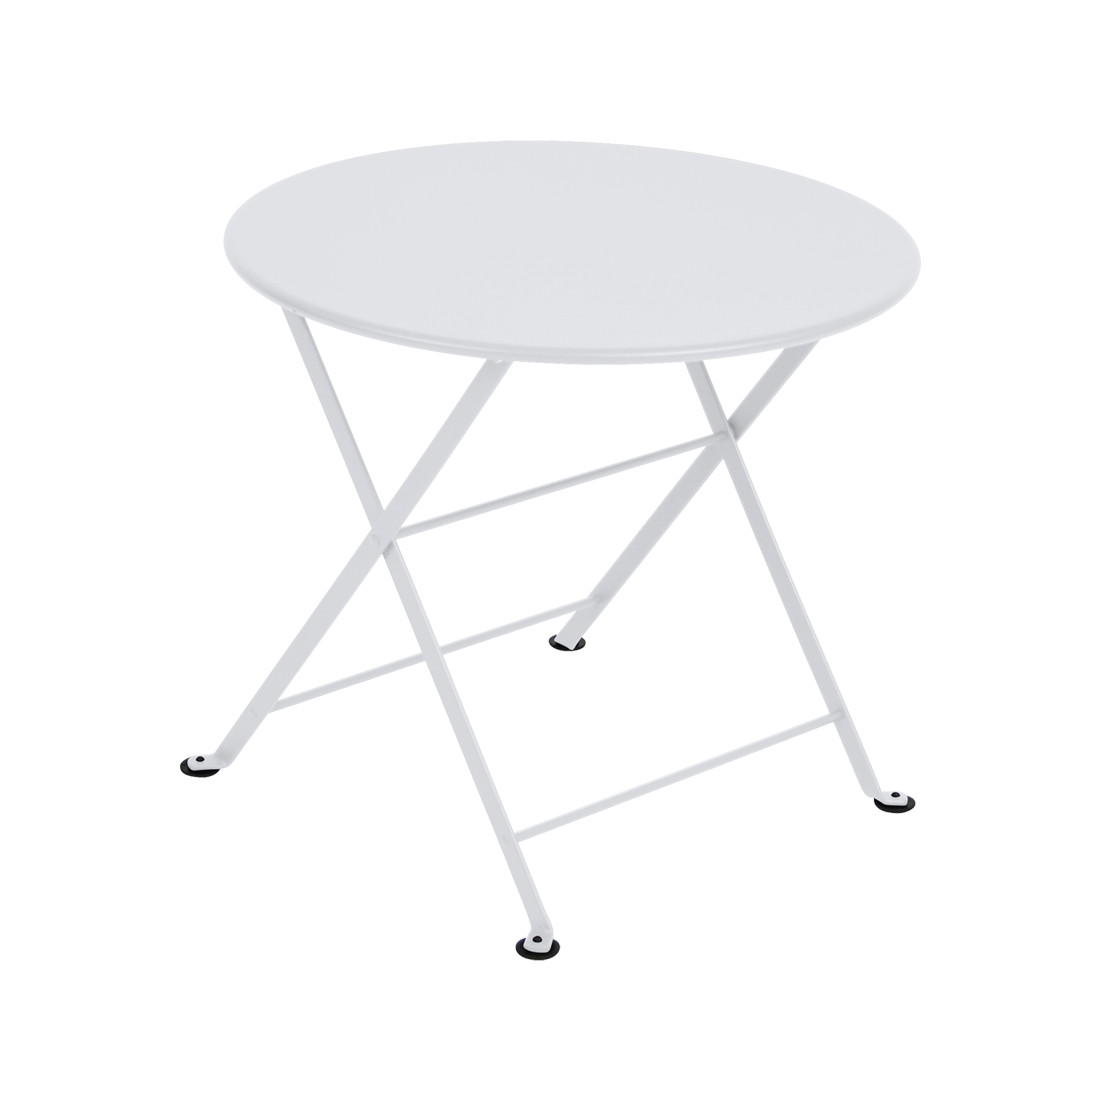 table basse metal, petite table basse, table metal enfant, table de jardin pour enfant, table enfant blanche